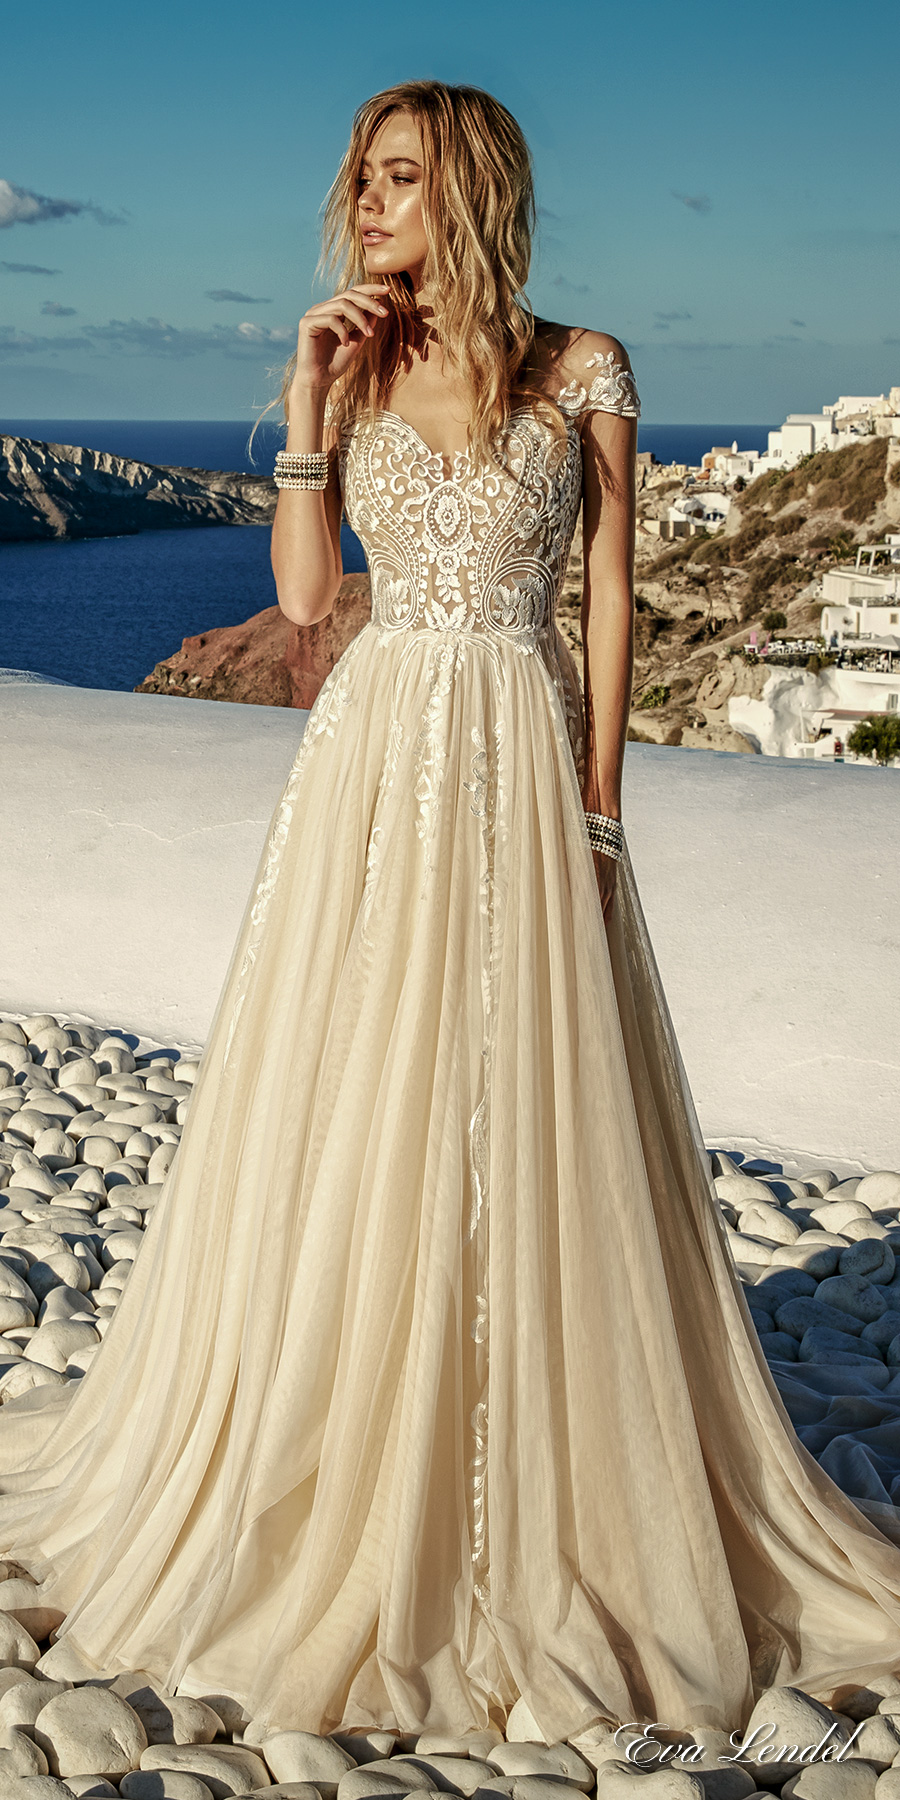 Eva lendel 2017 wedding dresses santorini bridal for Wedding dresses in color